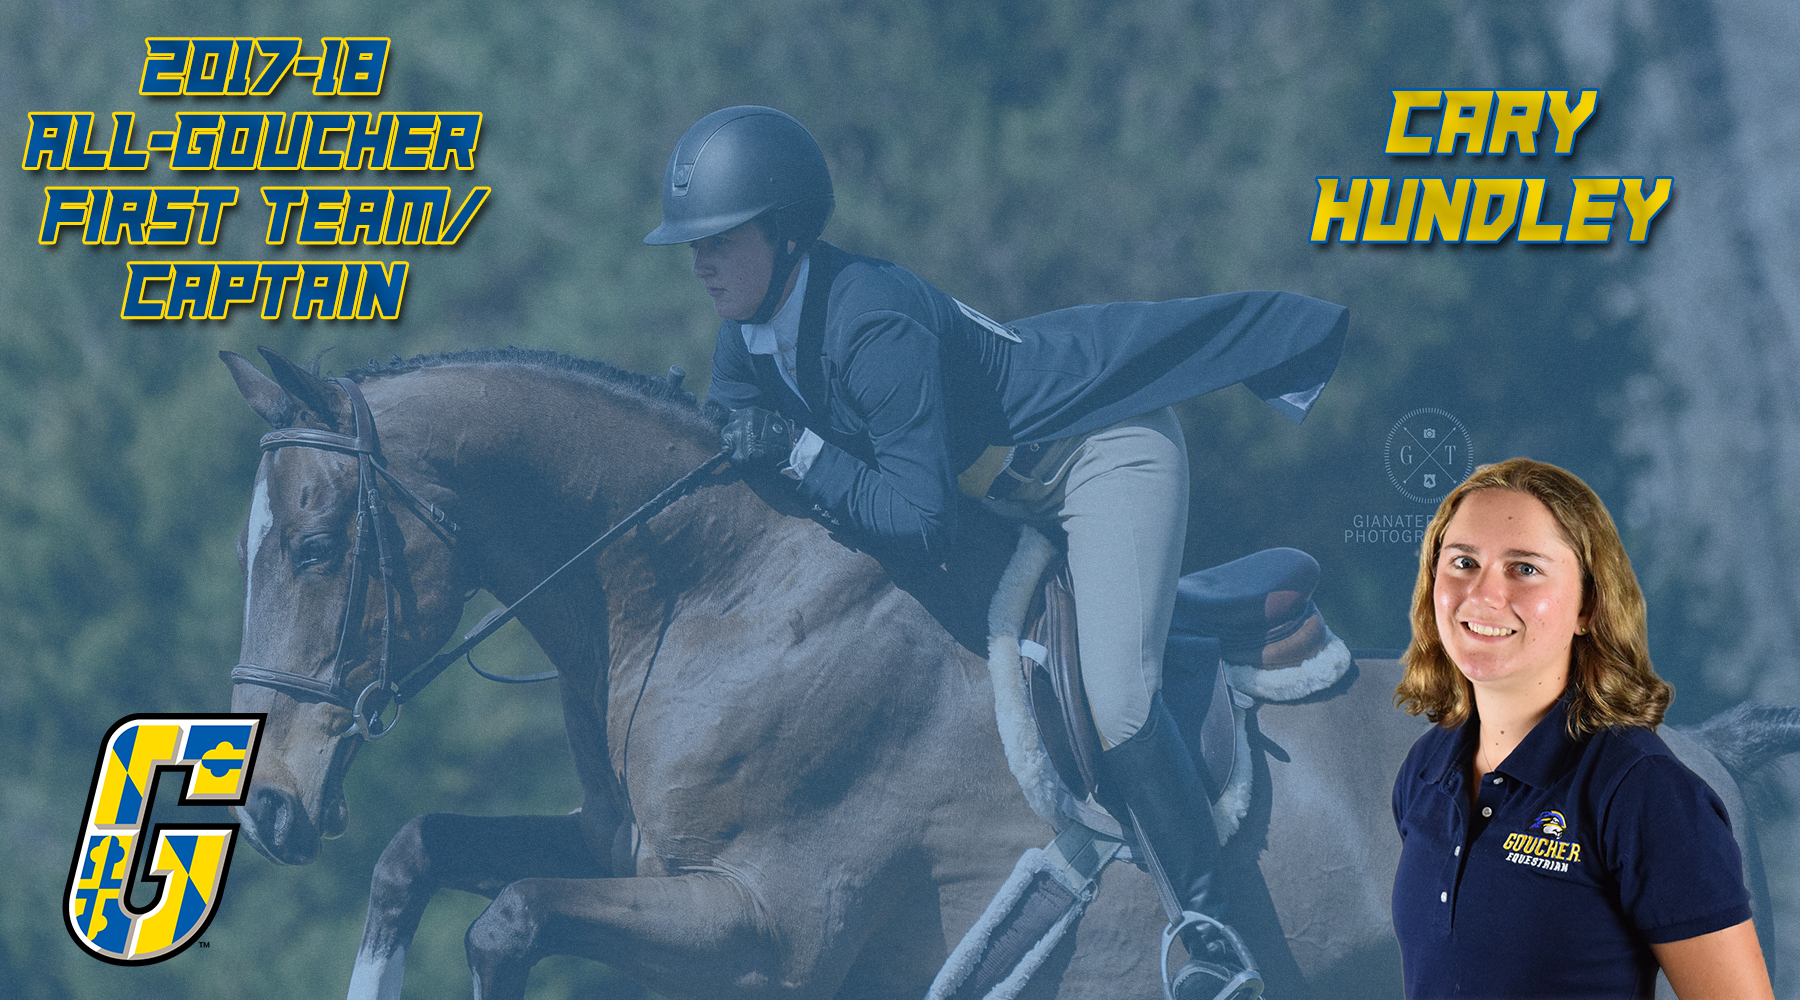 All-Goucher First Team Selection & Team Captain: Equestrian's Cary Hundley